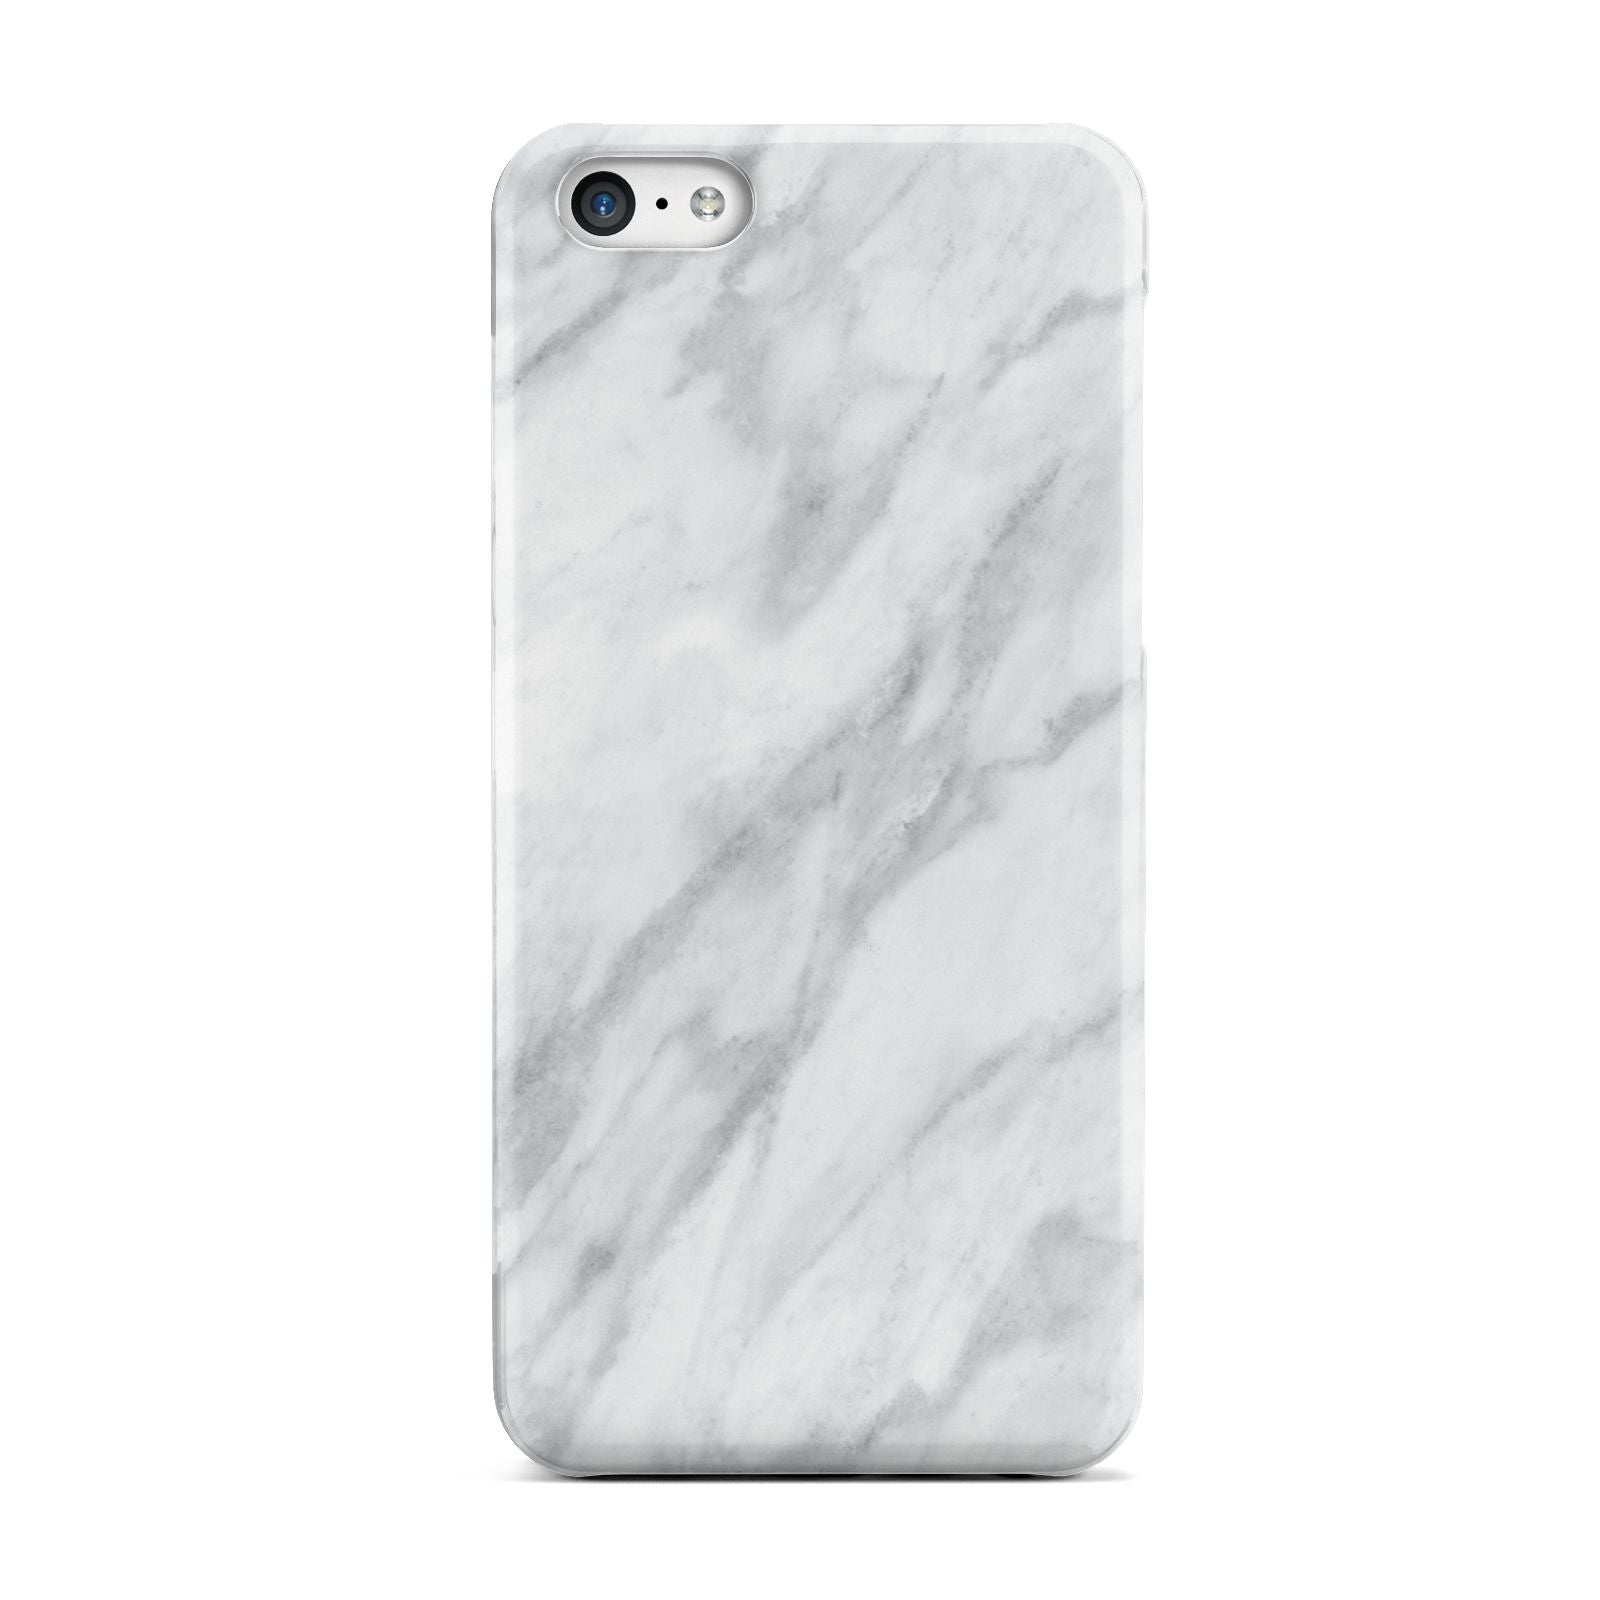 Faux Marble Effect Italian Apple iPhone 5c Case